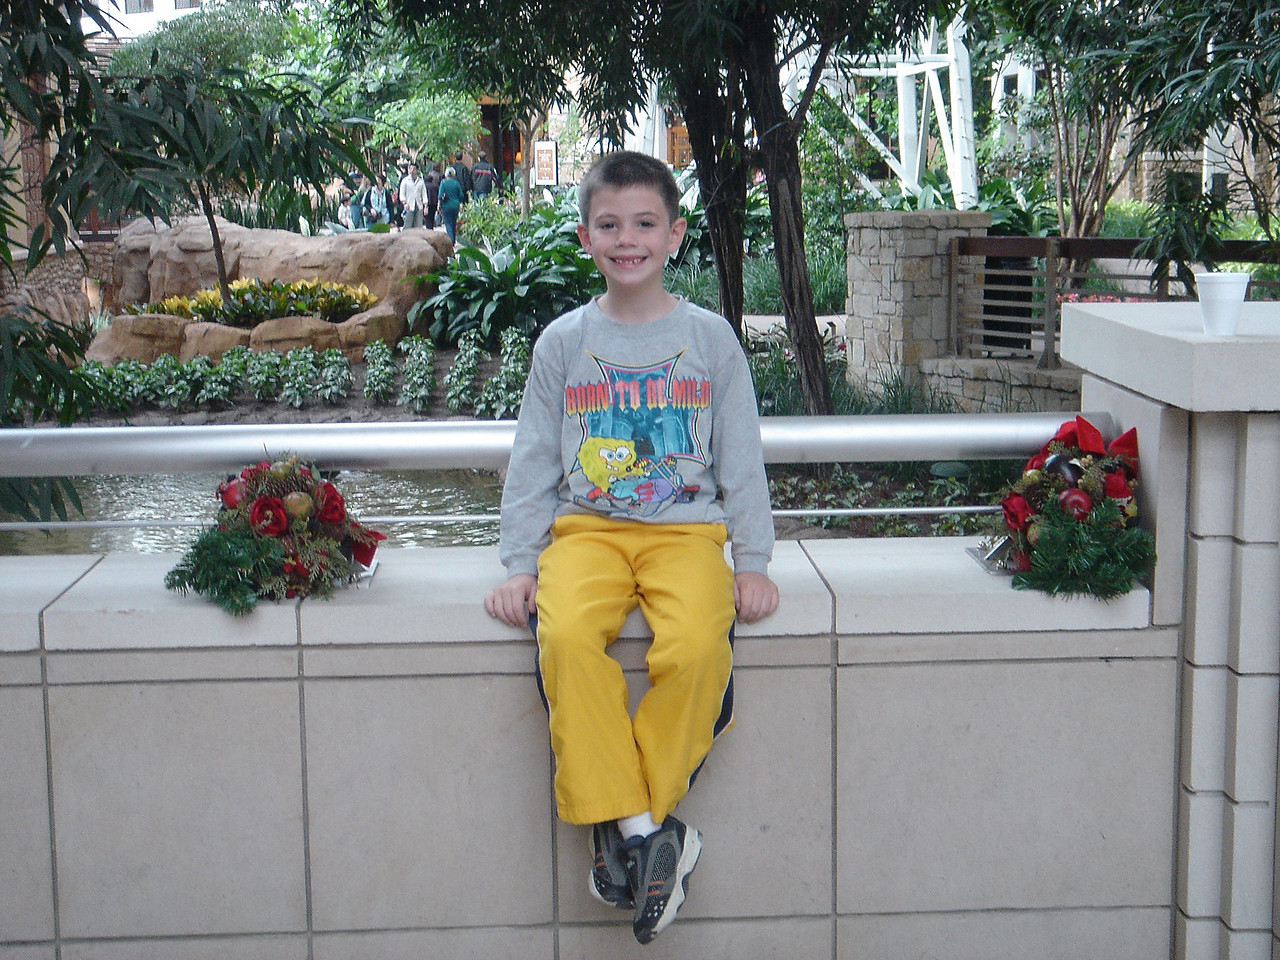 Reid at the Gaylord Texan